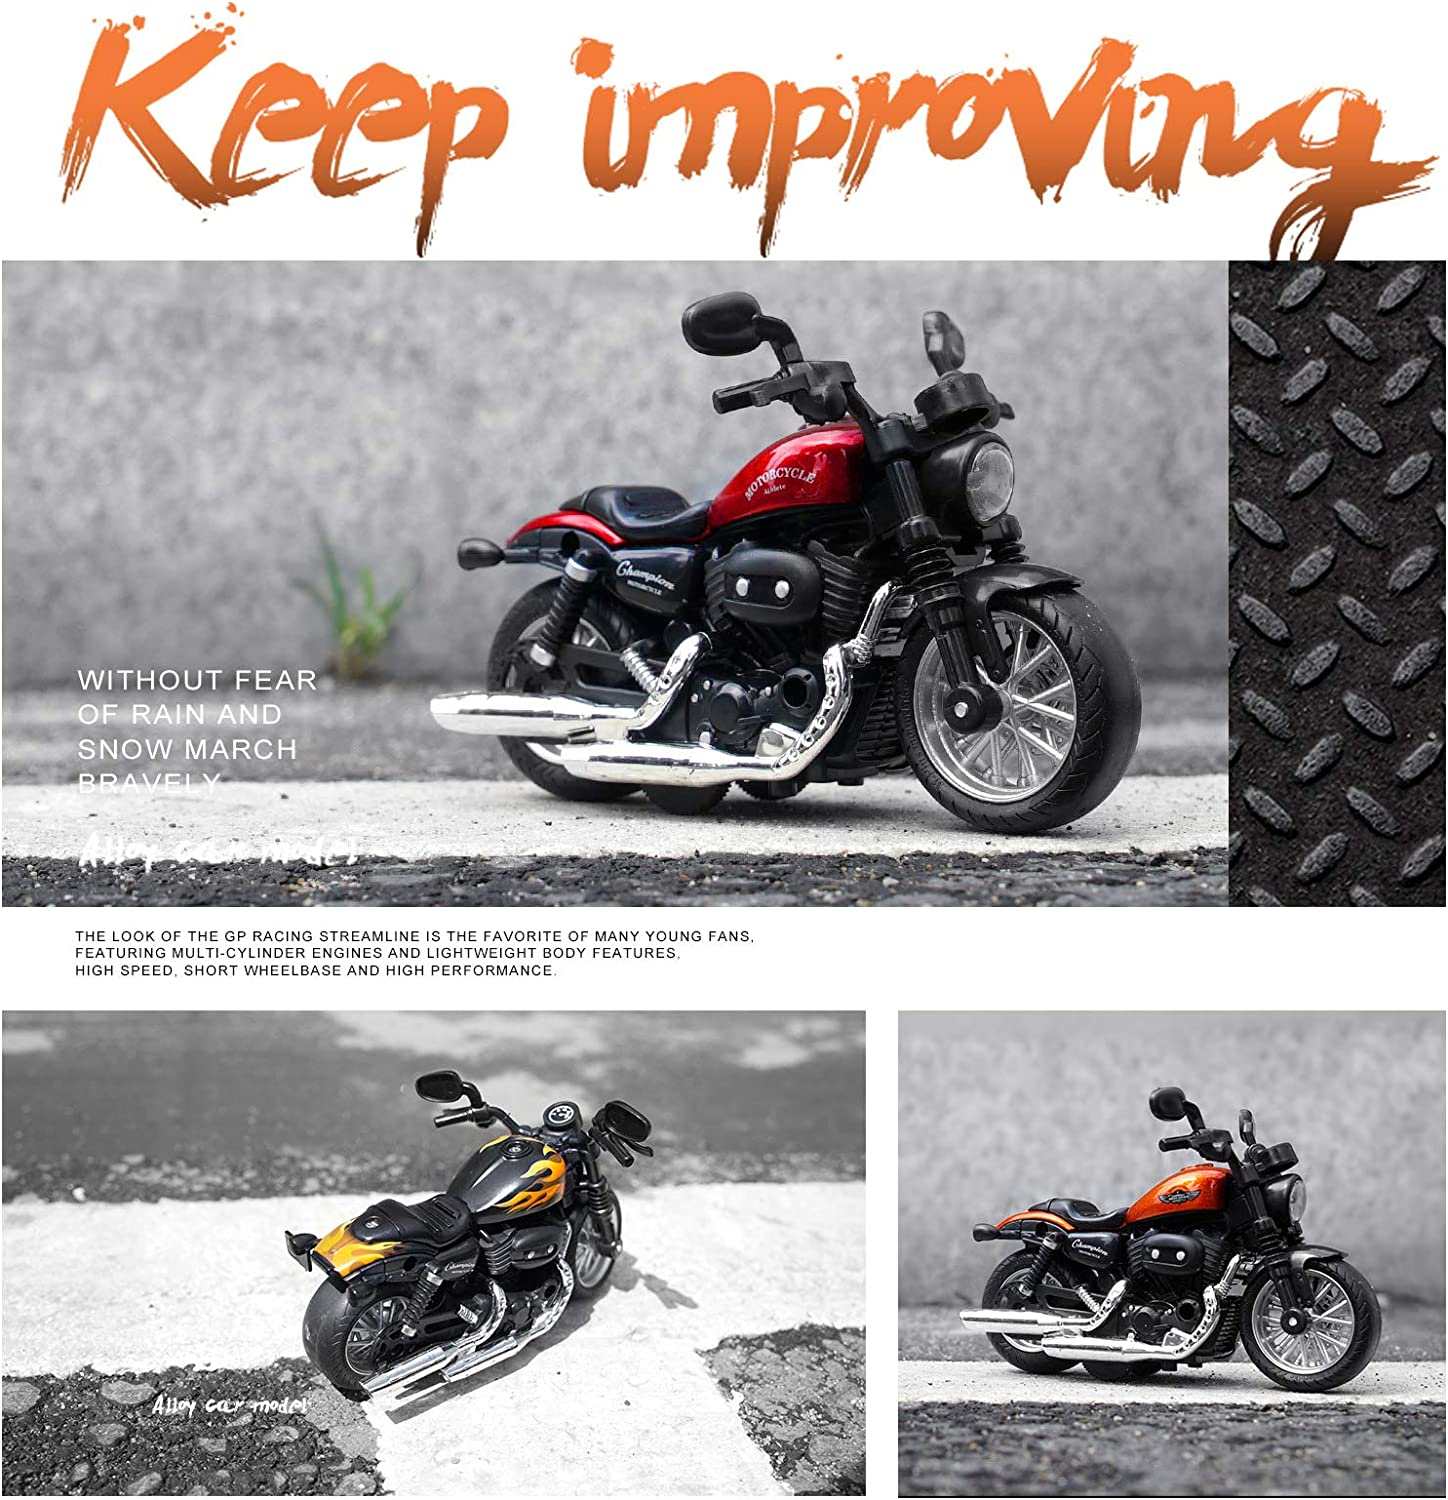 Toy Motorcycles for Boys MING YING 66 Mini Motorcycle Toy Gift Toys for 3 4 5 6 7 8 Year Old Boys with Light and Music Toys Motorcycle Model Orange